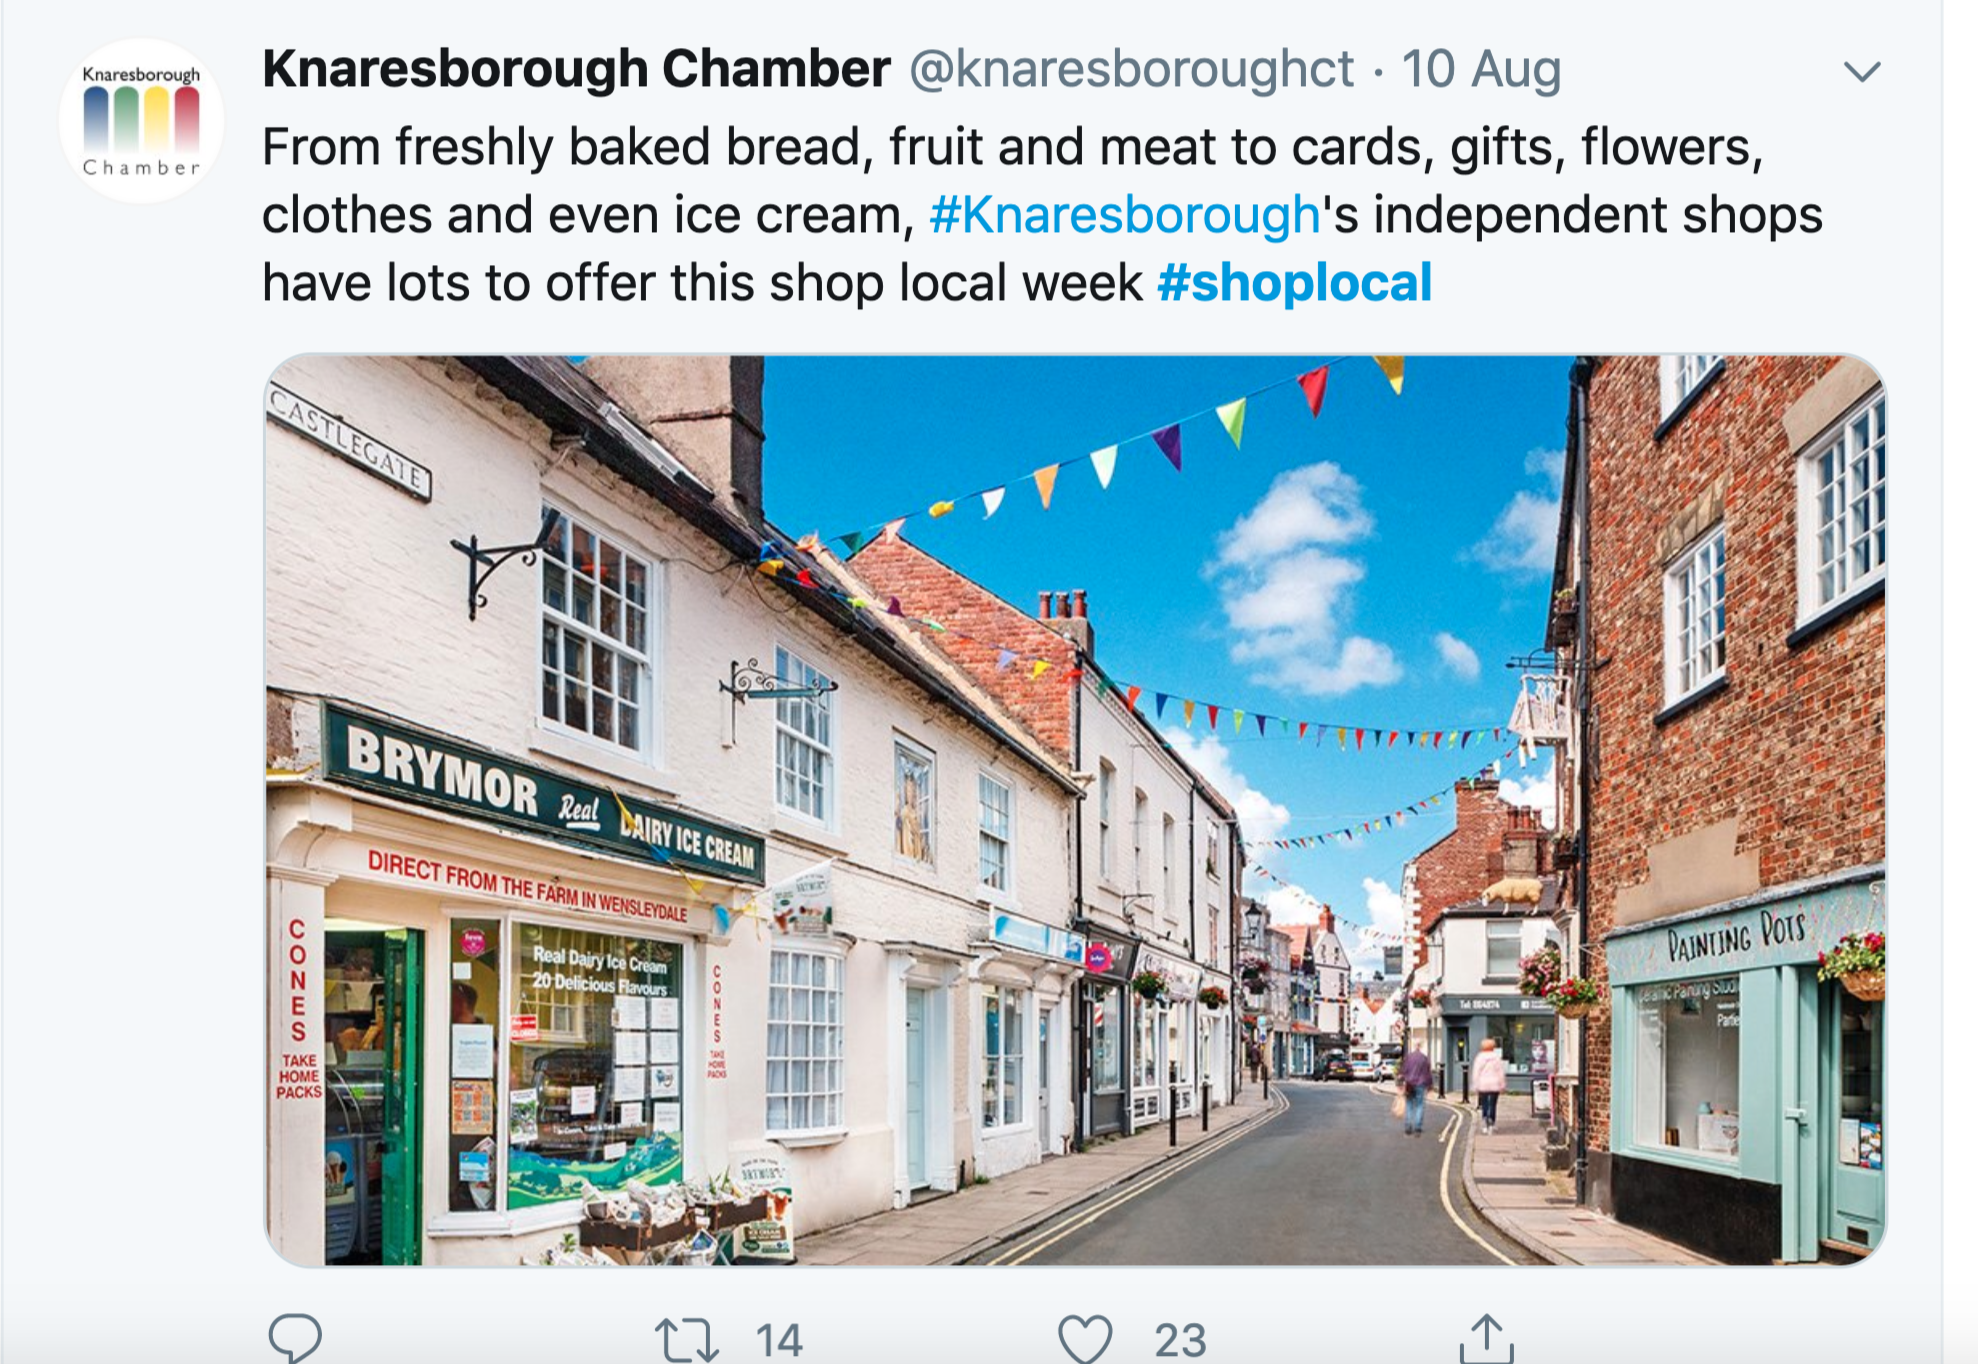 Above: The Government has joined forces with other business groups, such as Small Business Saturday and Federation of Small Businesses as well as local town groups to promote the Shop Local campaign.